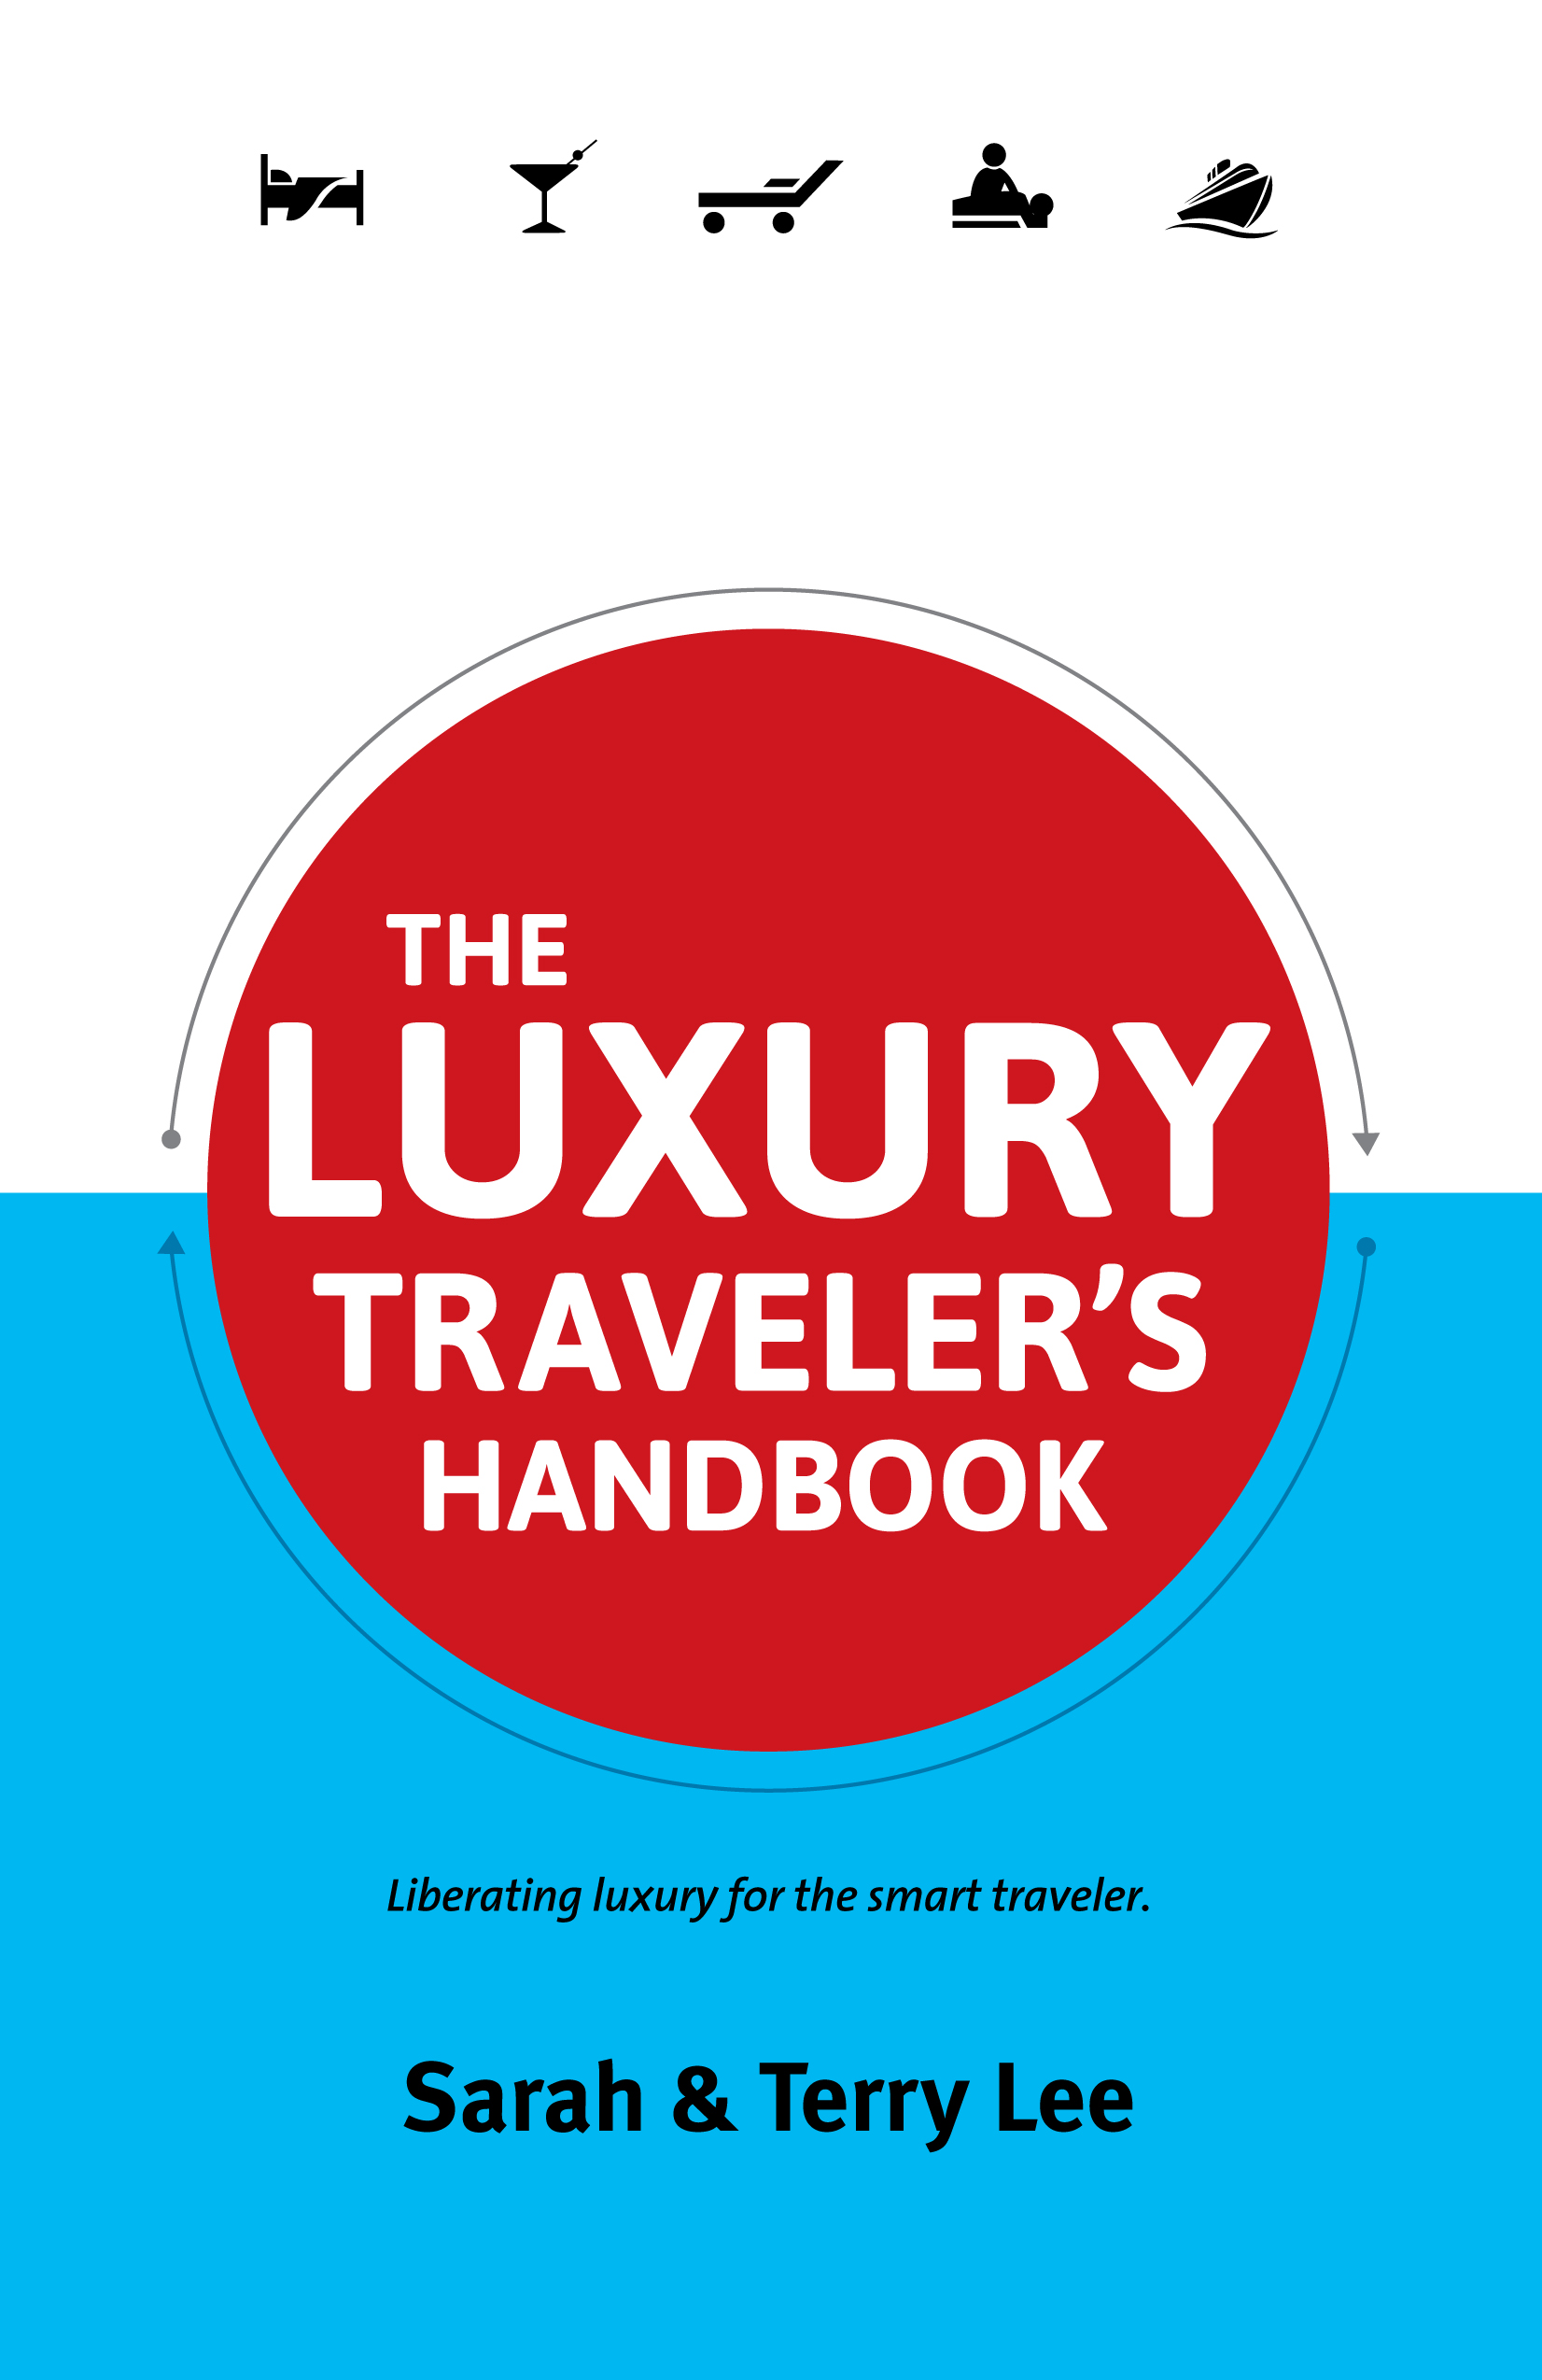 The Luxury Traveler's Handbook: Liberating luxury for the smart traveler.